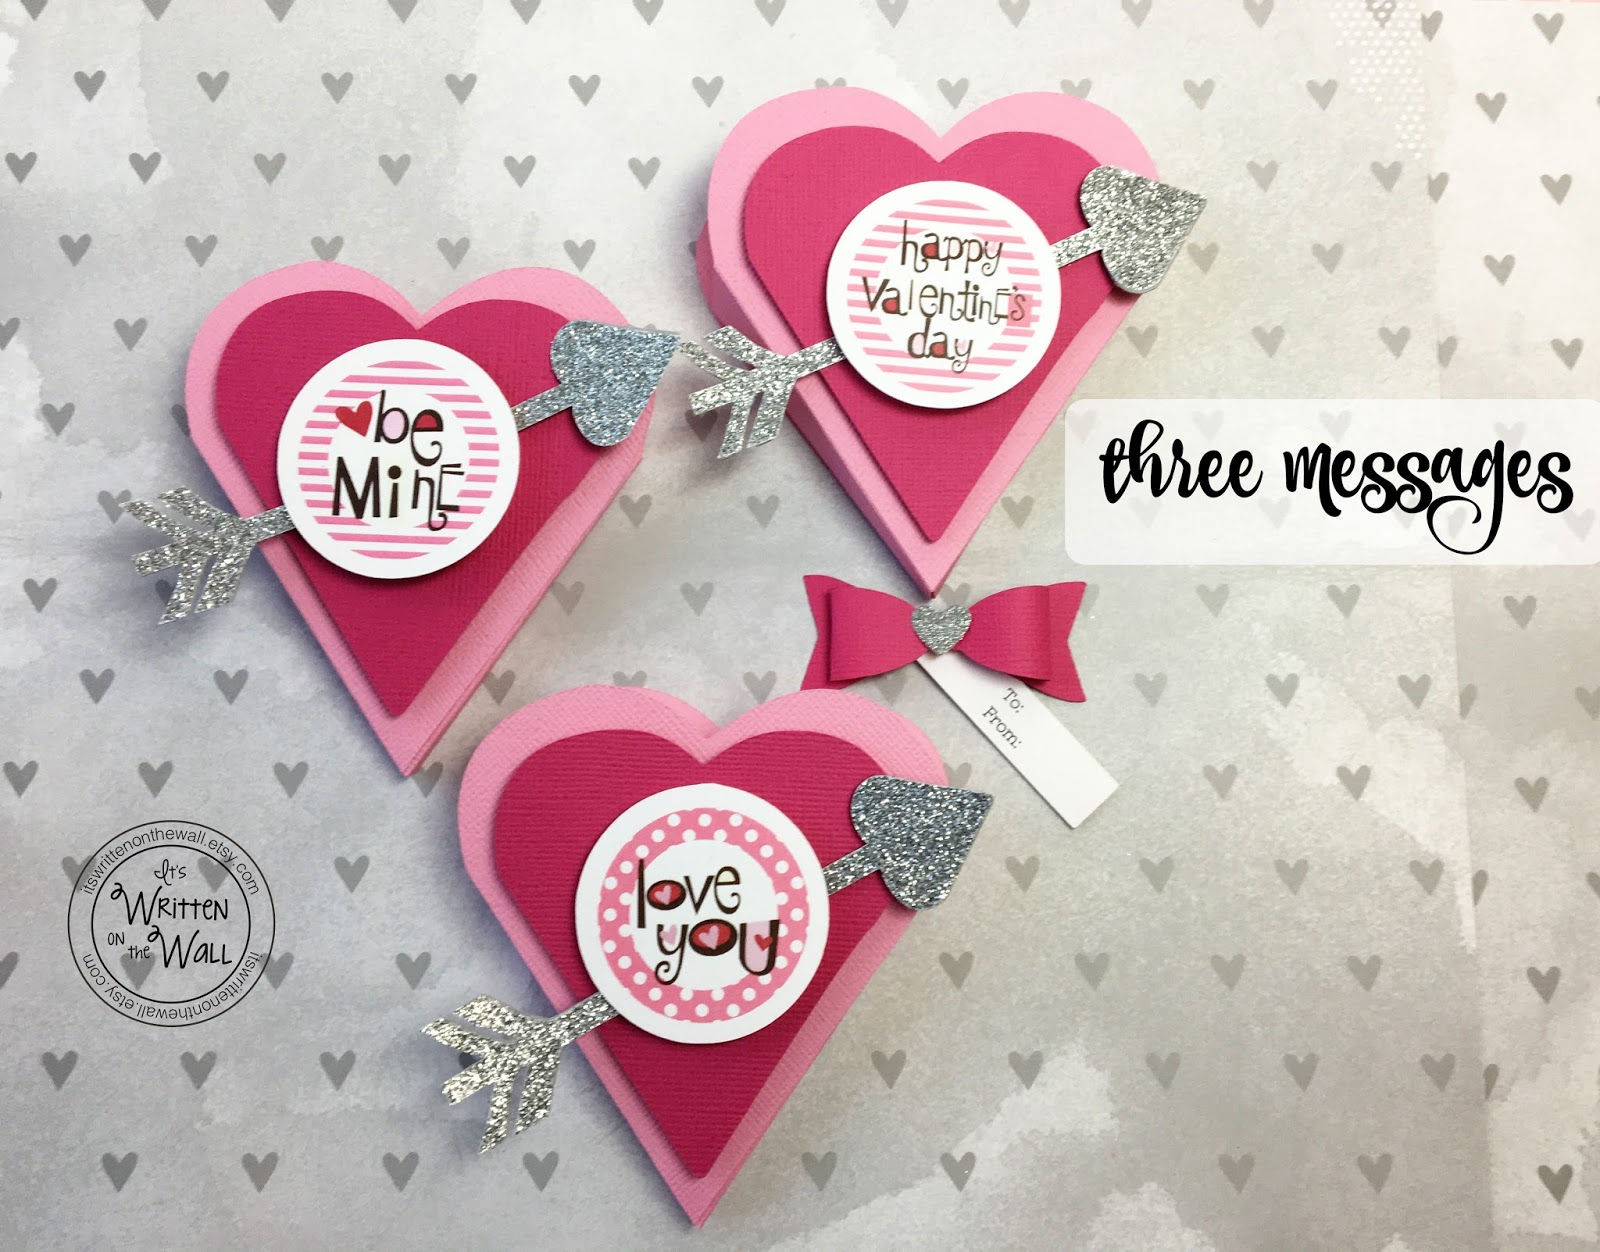 Choose From 3 Different Messages. You Order One Message For Your Heart  Boxes Or A Variety Of Messages. Itu0027s Totally Up To You. What Message Do You  Need?